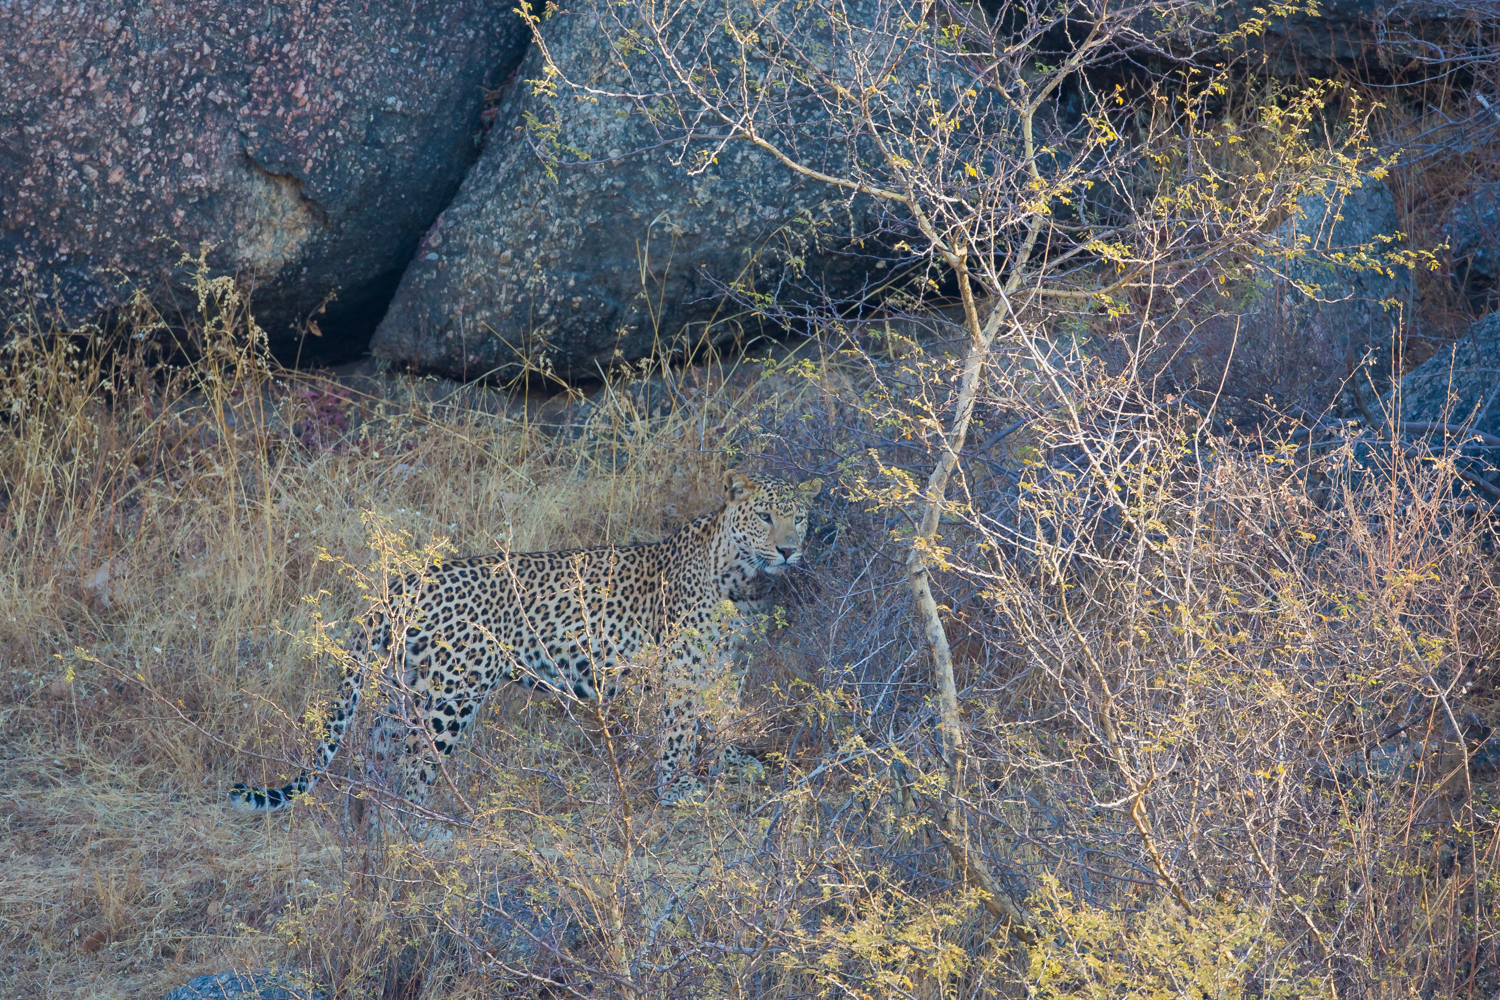 Leopard, Indian wildlife, big cats, camouflage